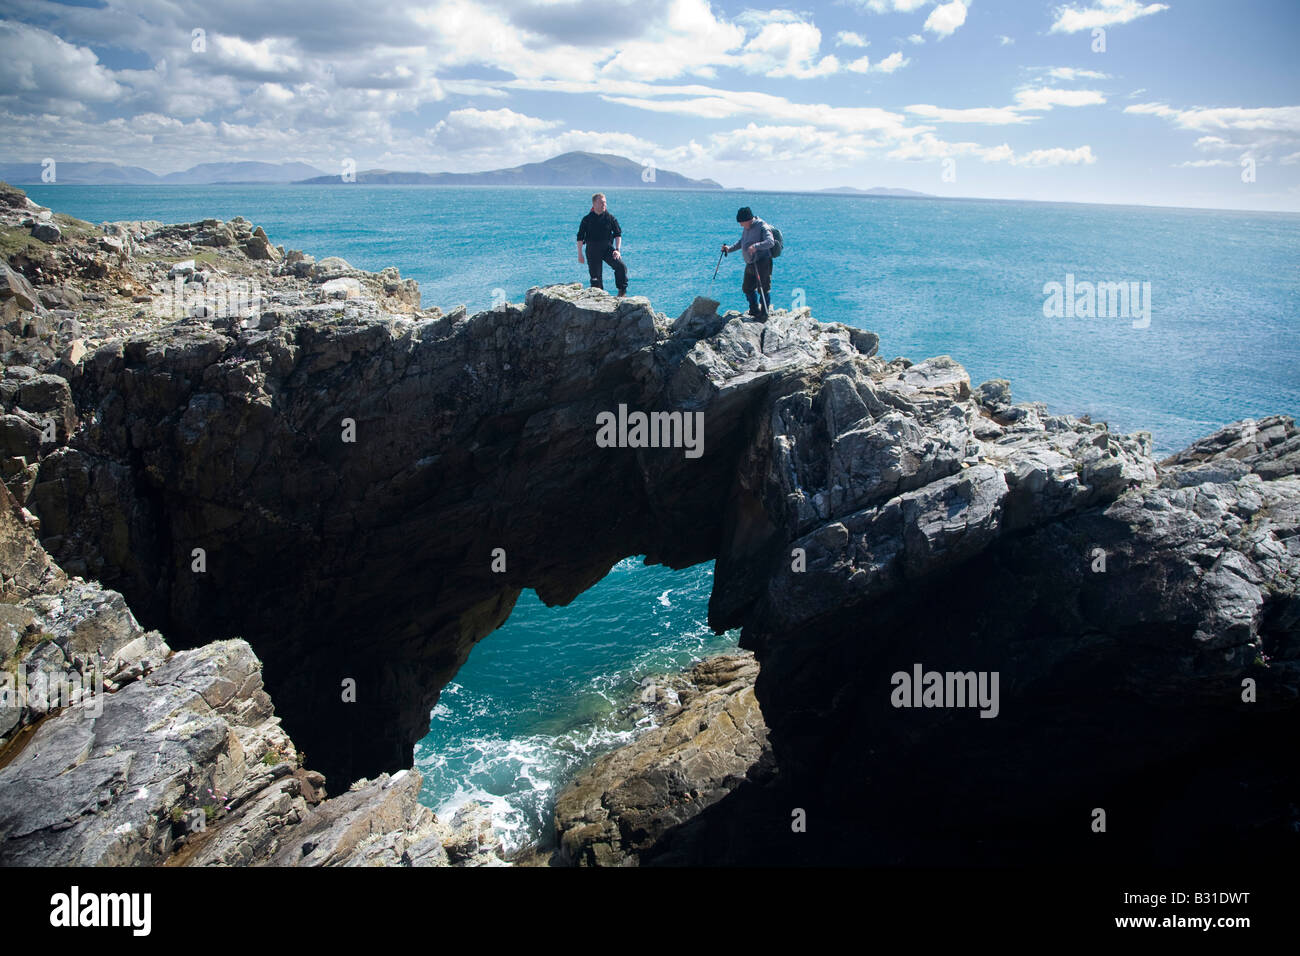 Hikers standing on top of a sea arch at Dooega Head, Achill Island, County Mayo, Ireland. - Stock Image